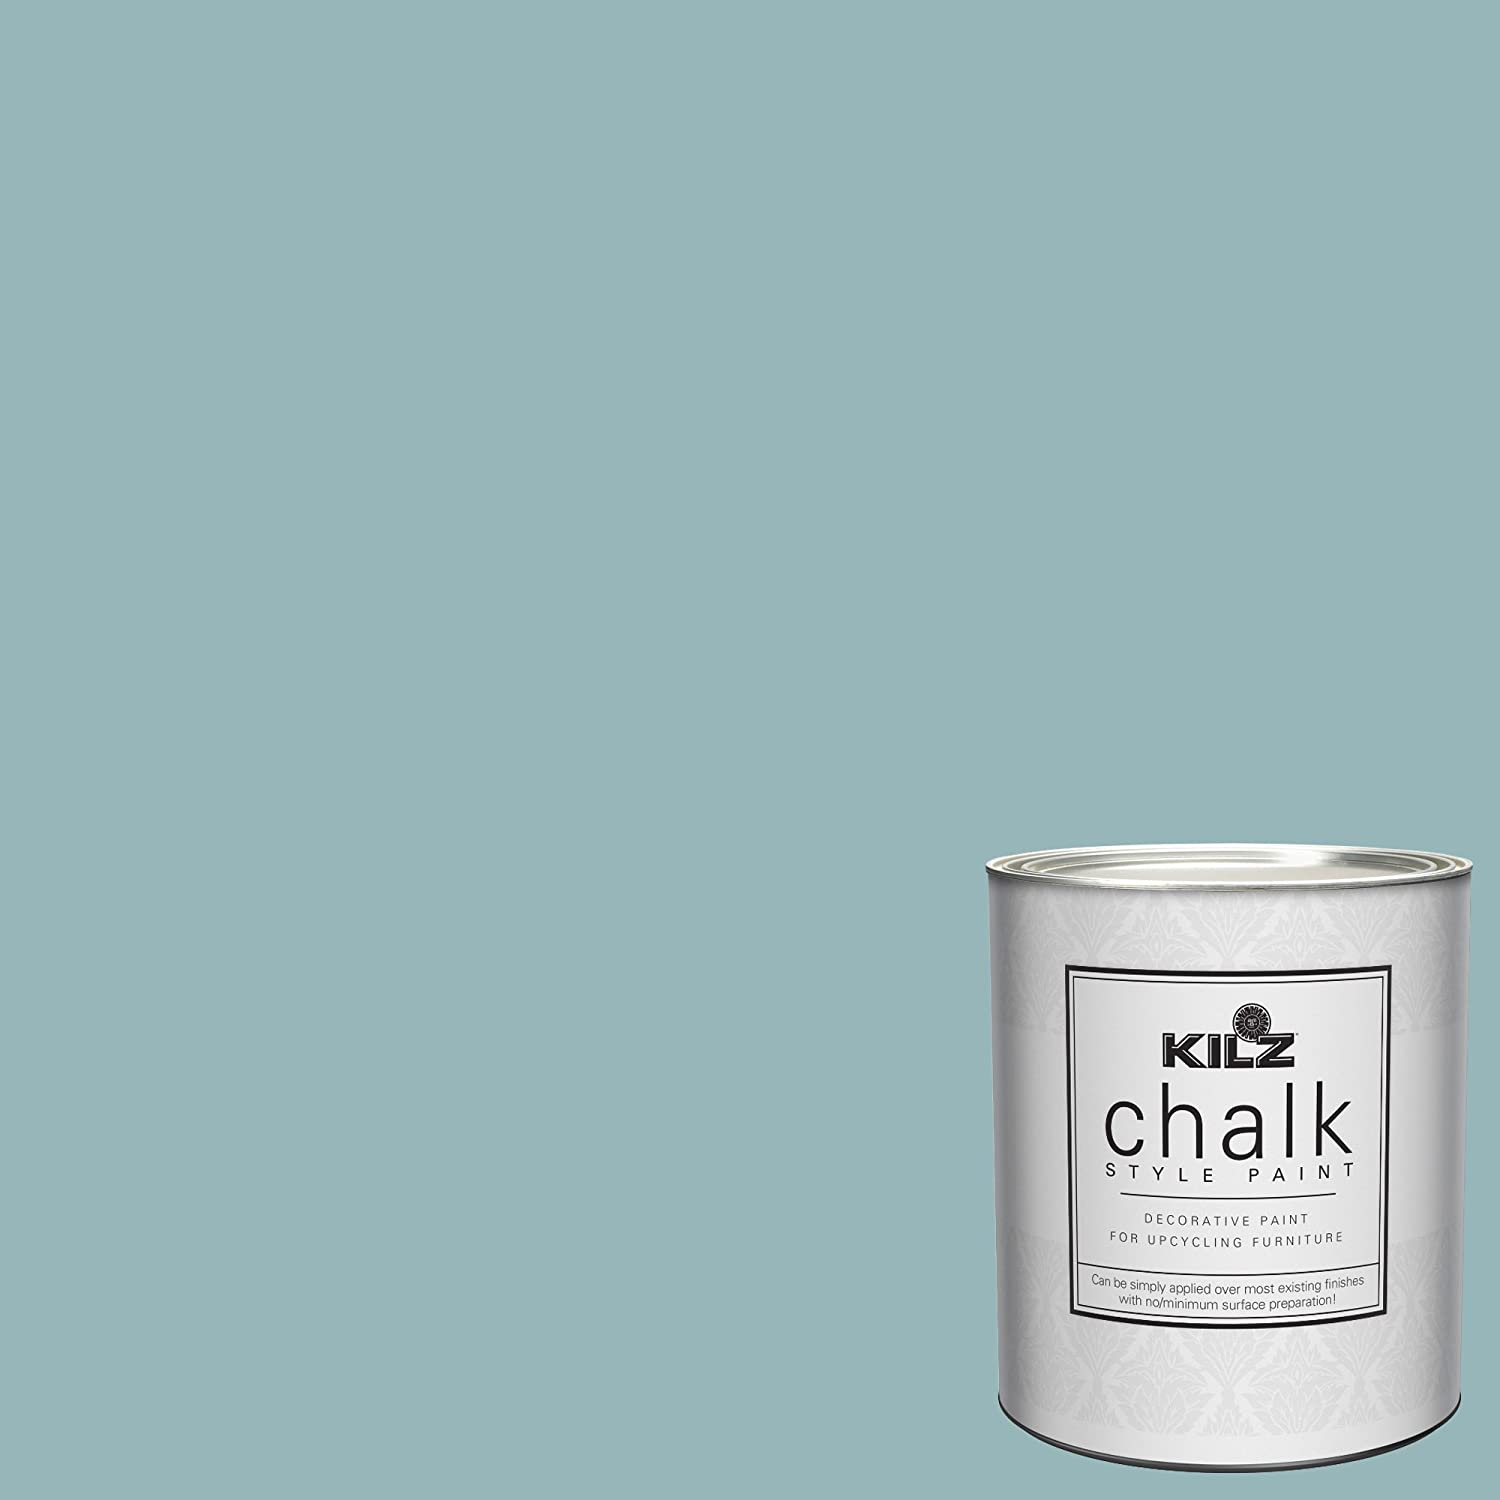 KILZ 00003904 Interior Chalk Style Ultra Flat Decorative Paint for Furniture, 1 Quart, Blue Juniper